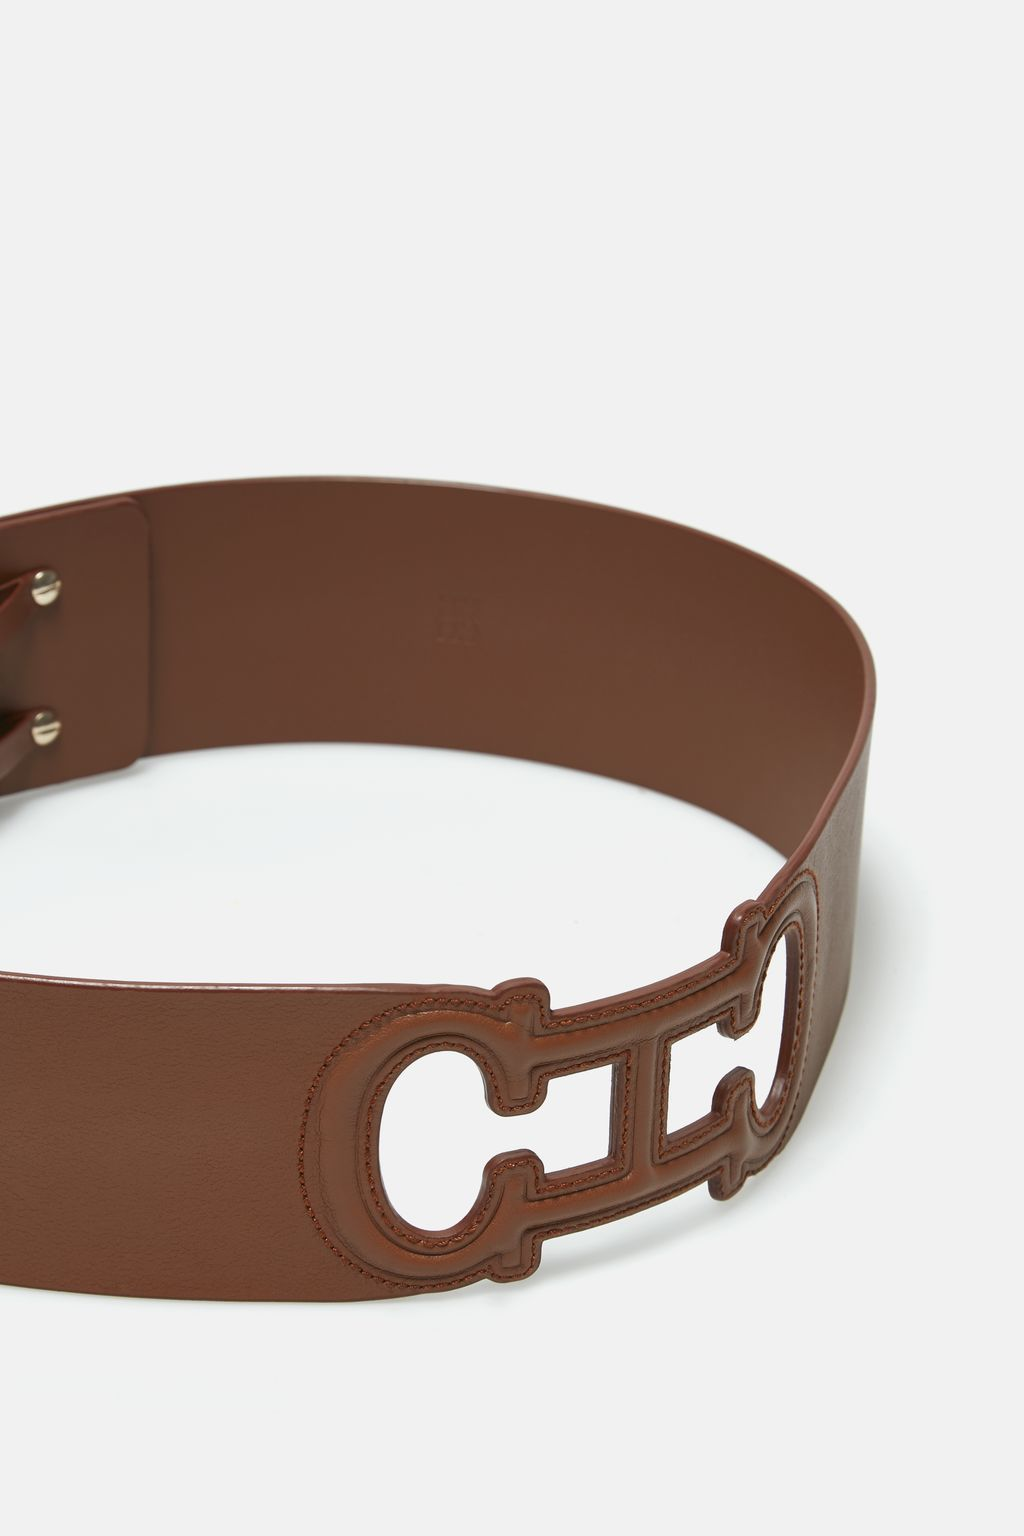 Initials Insignia perforated leather belt